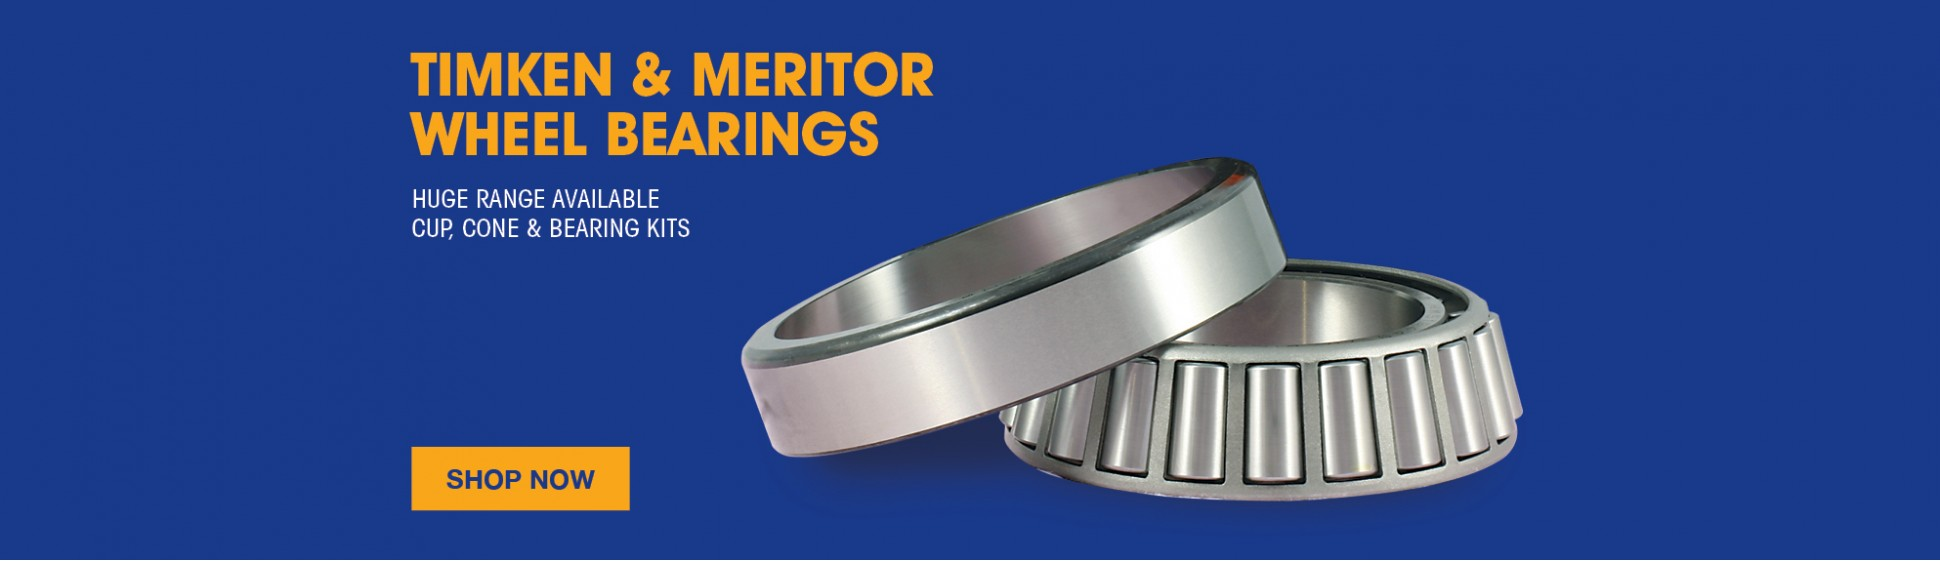 TIMKEN & MERITOR WHEEL BEARINGS